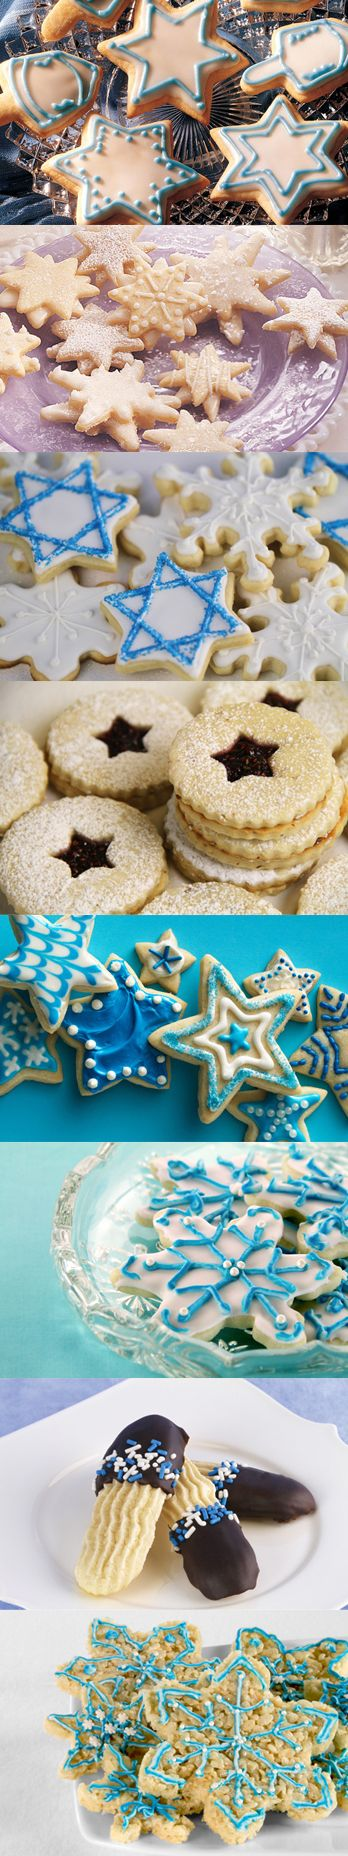 Because I can never think of enough clever frosting designs for blue and white cookies!